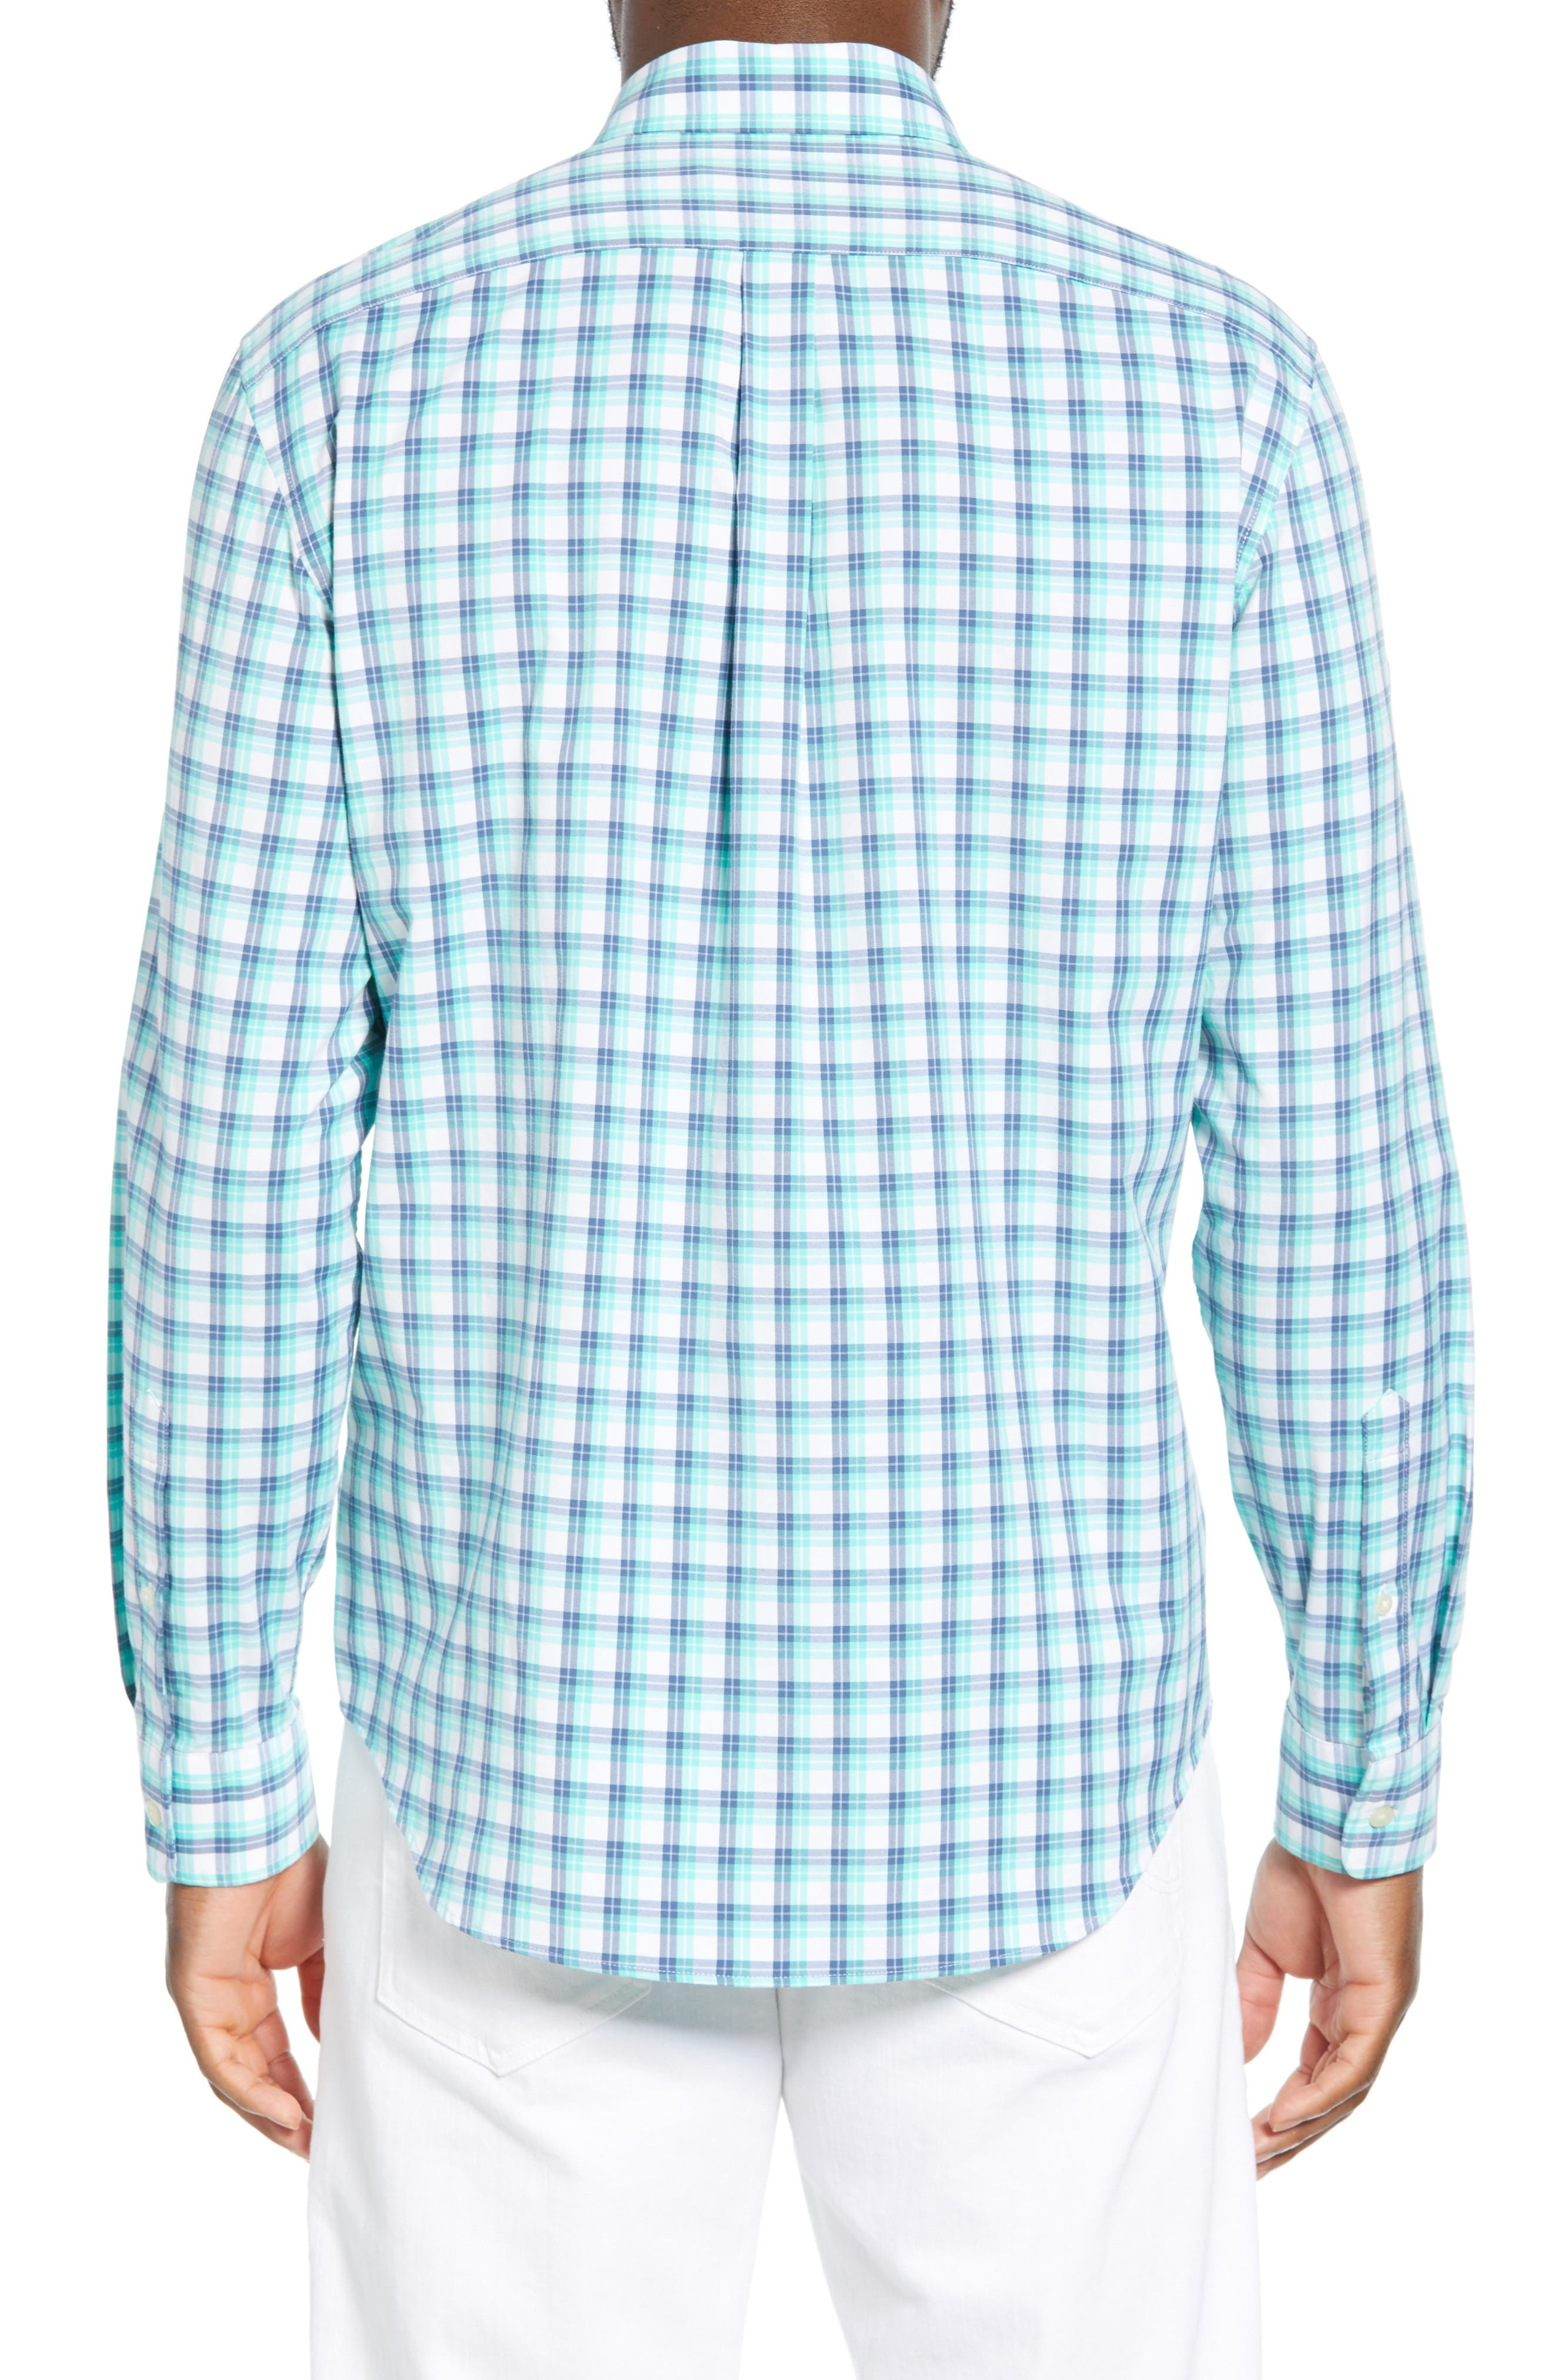 VINEYARD VINES,                             South Street Tucker Slim Fit Sport Shirt,                             Alternate thumbnail 3, color,                             CAPRI BLUE